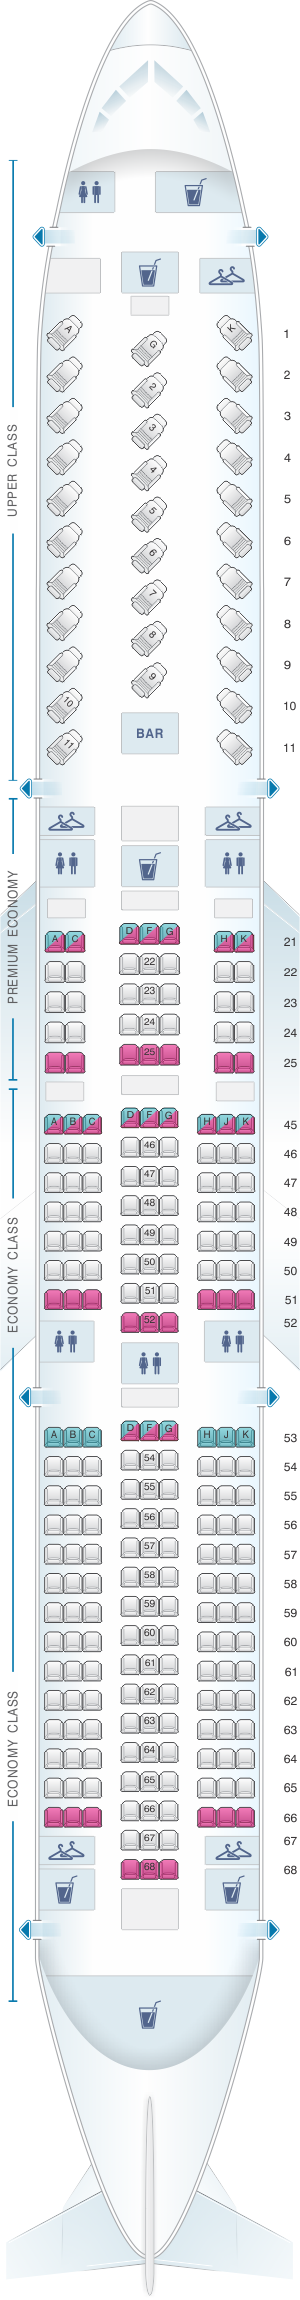 Seat map for Virgin Atlantic Boeing B787 900